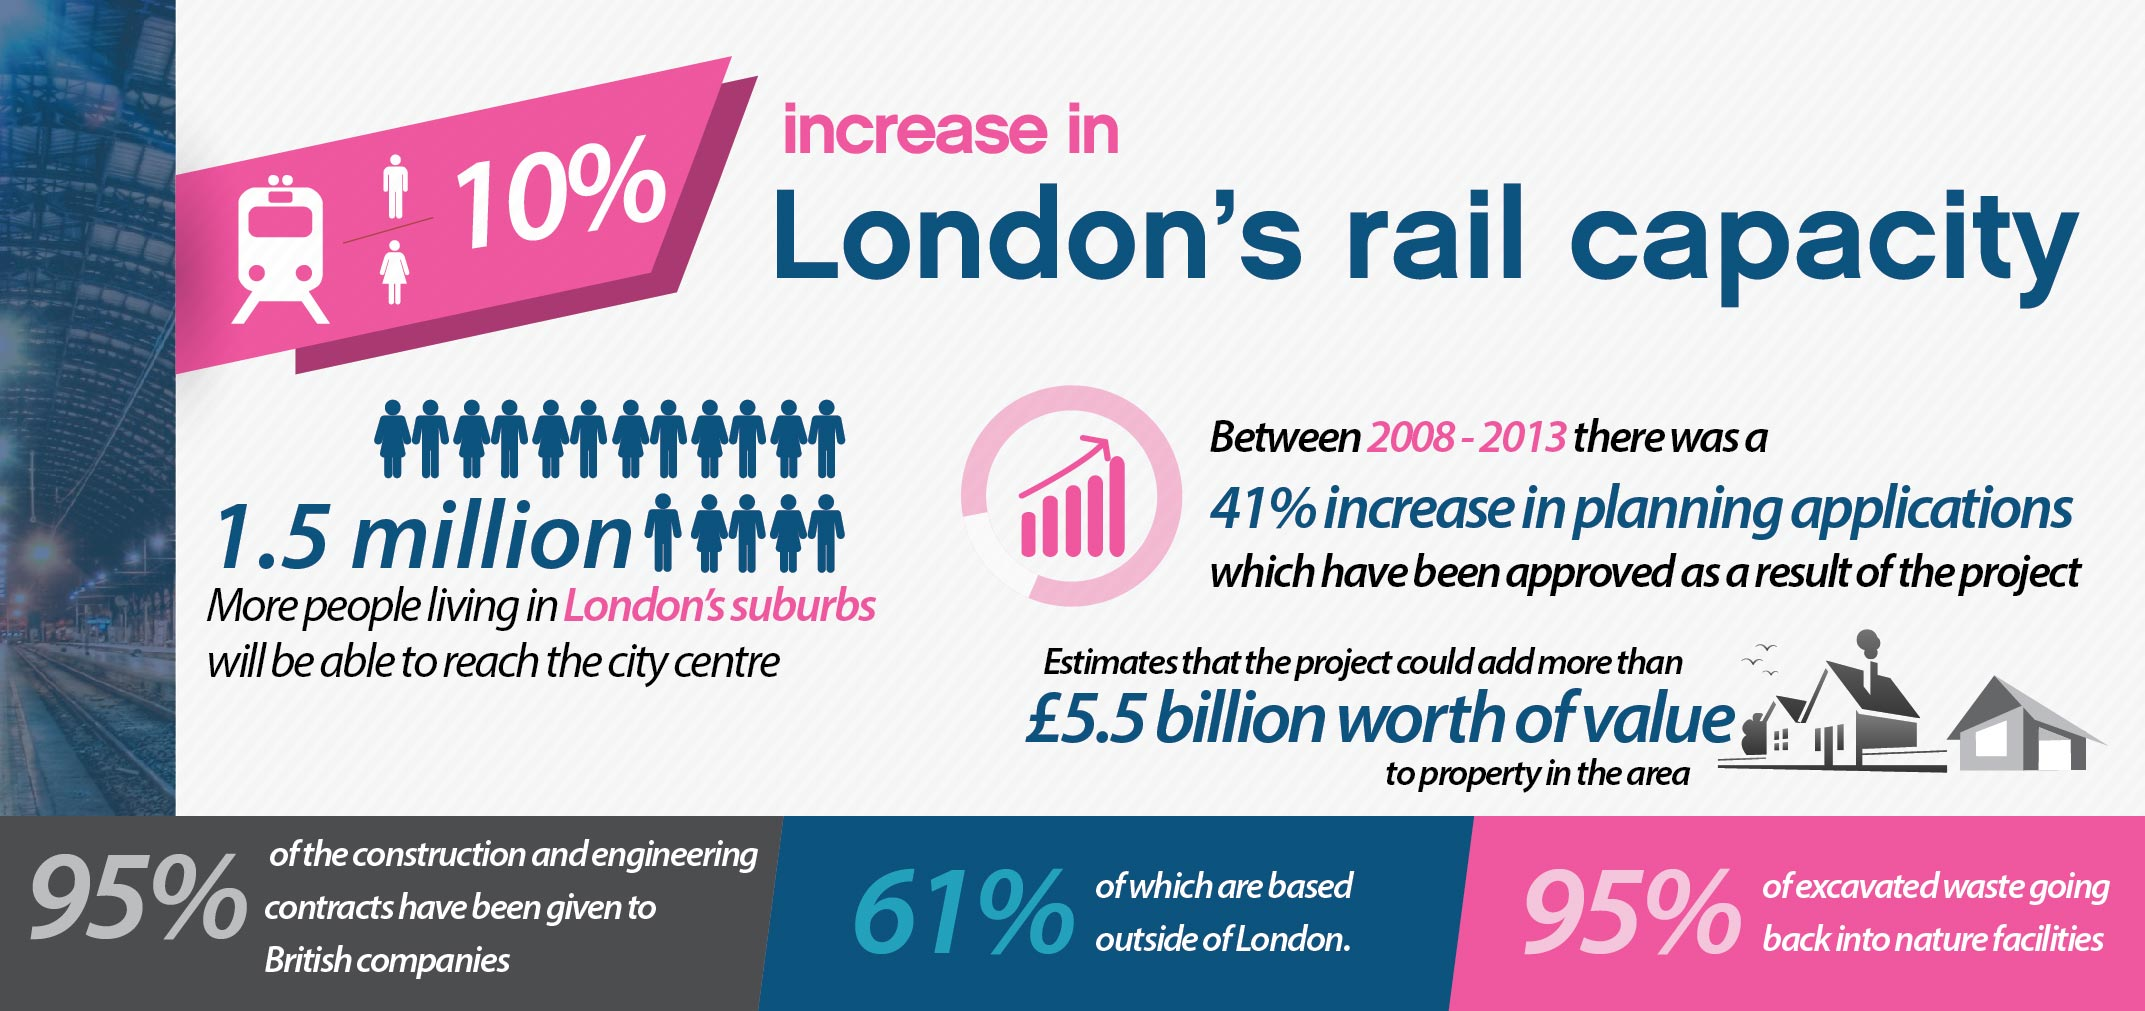 London's Rail Capacity stats